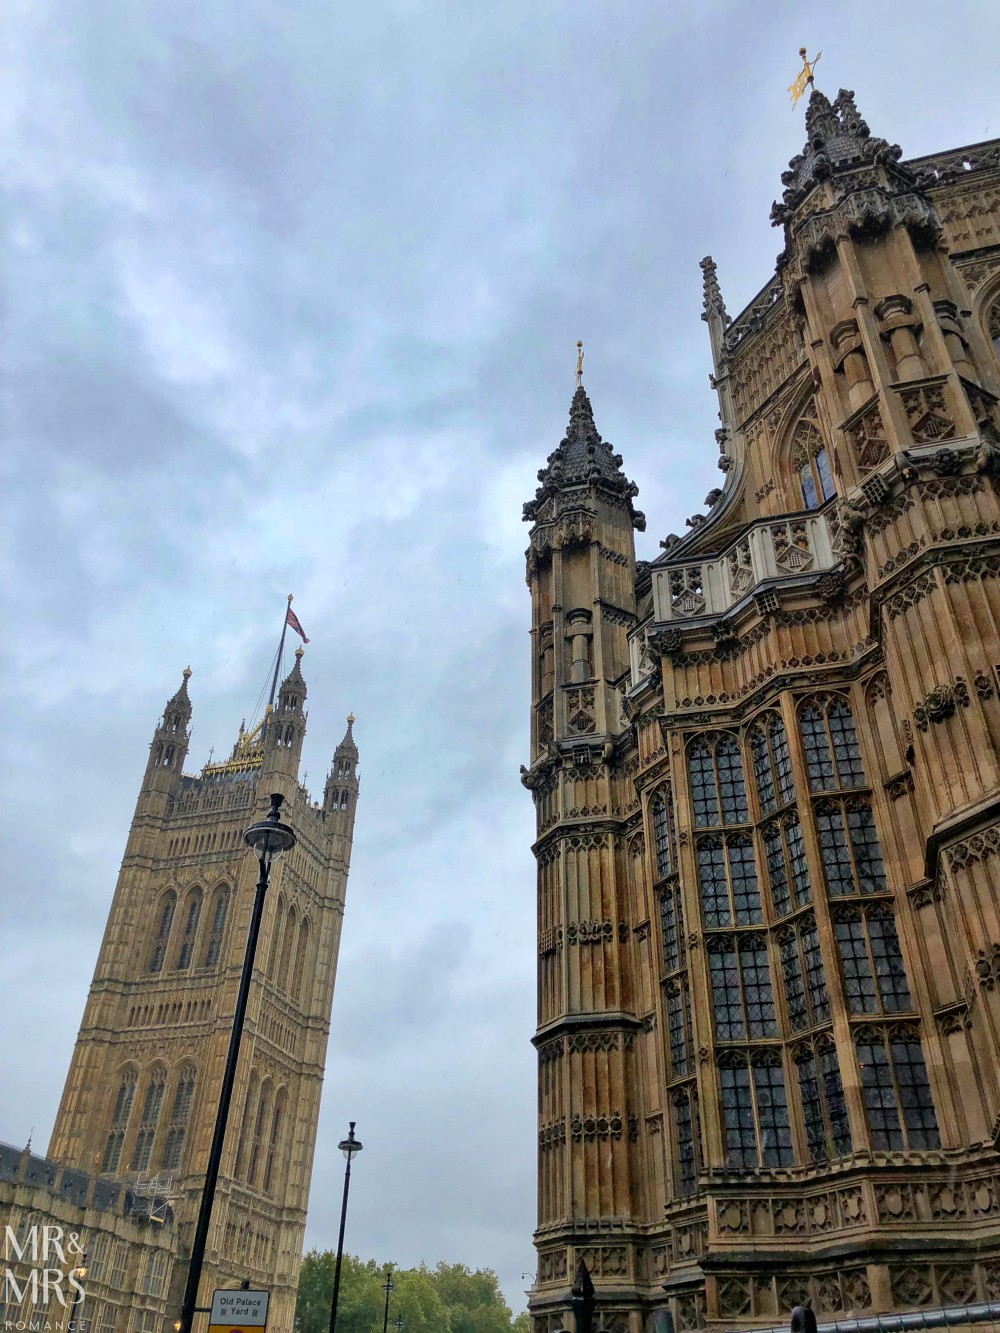 London in the rain - Westminster